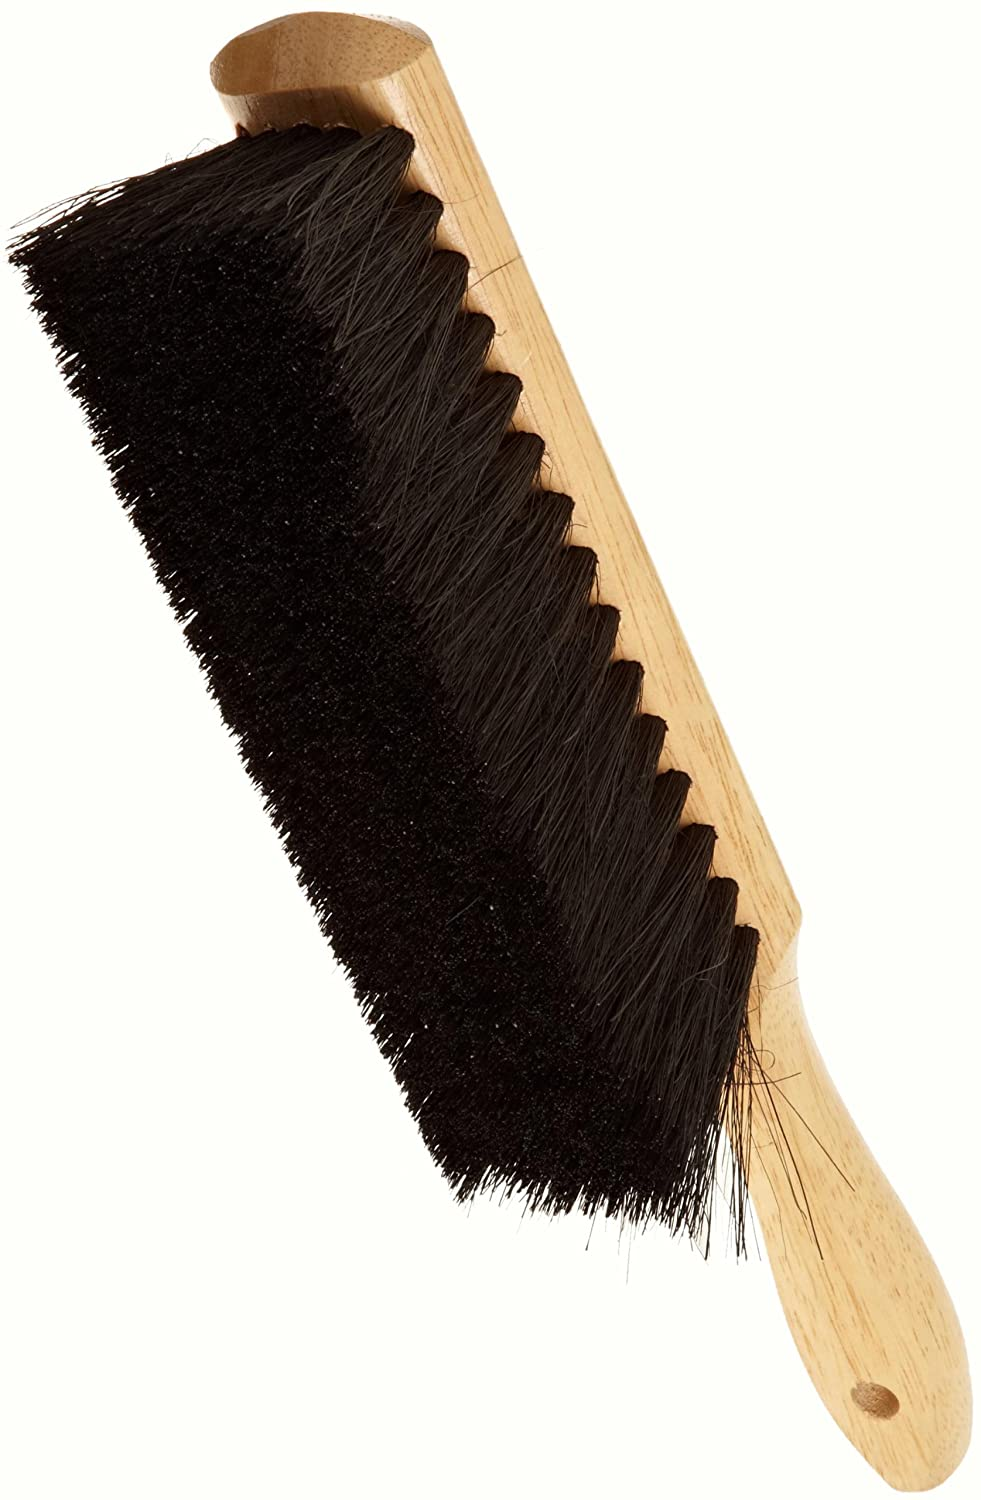 Weiler 44003 Horsehair Counter Duster with Wood Handle, Horsehair Fill, 2-1/2